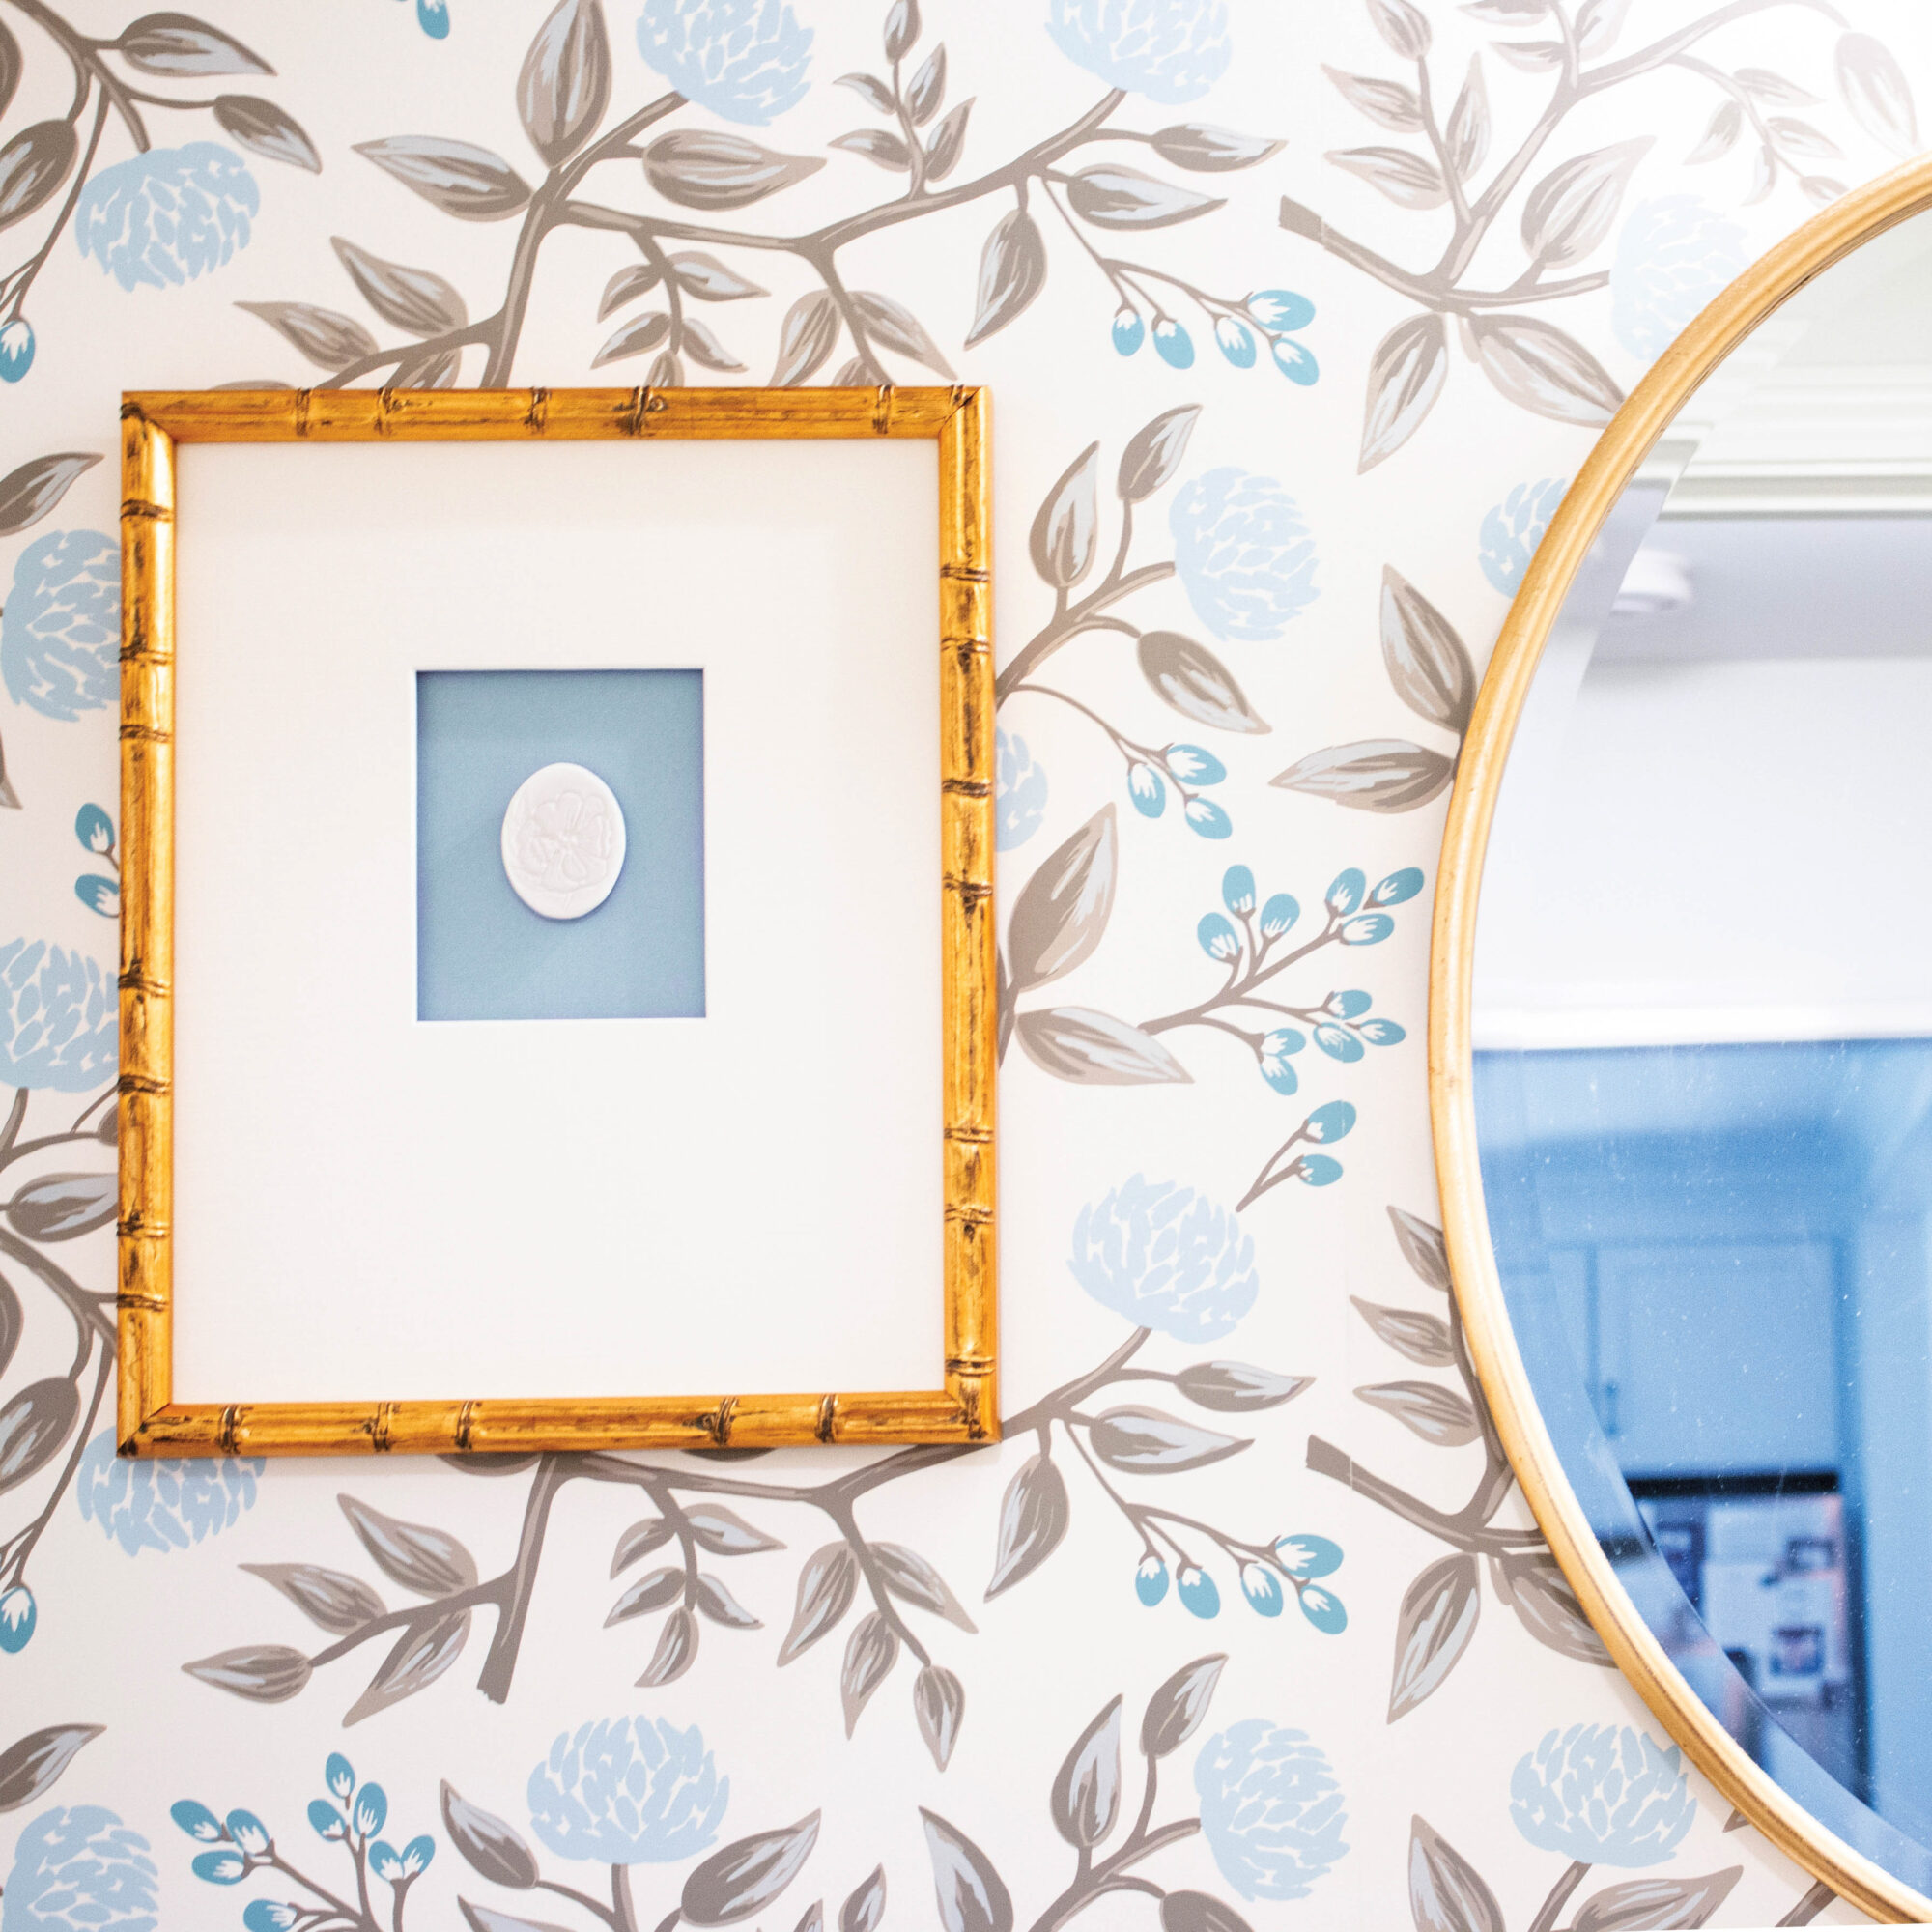 vignette of wallpaper and picture frame